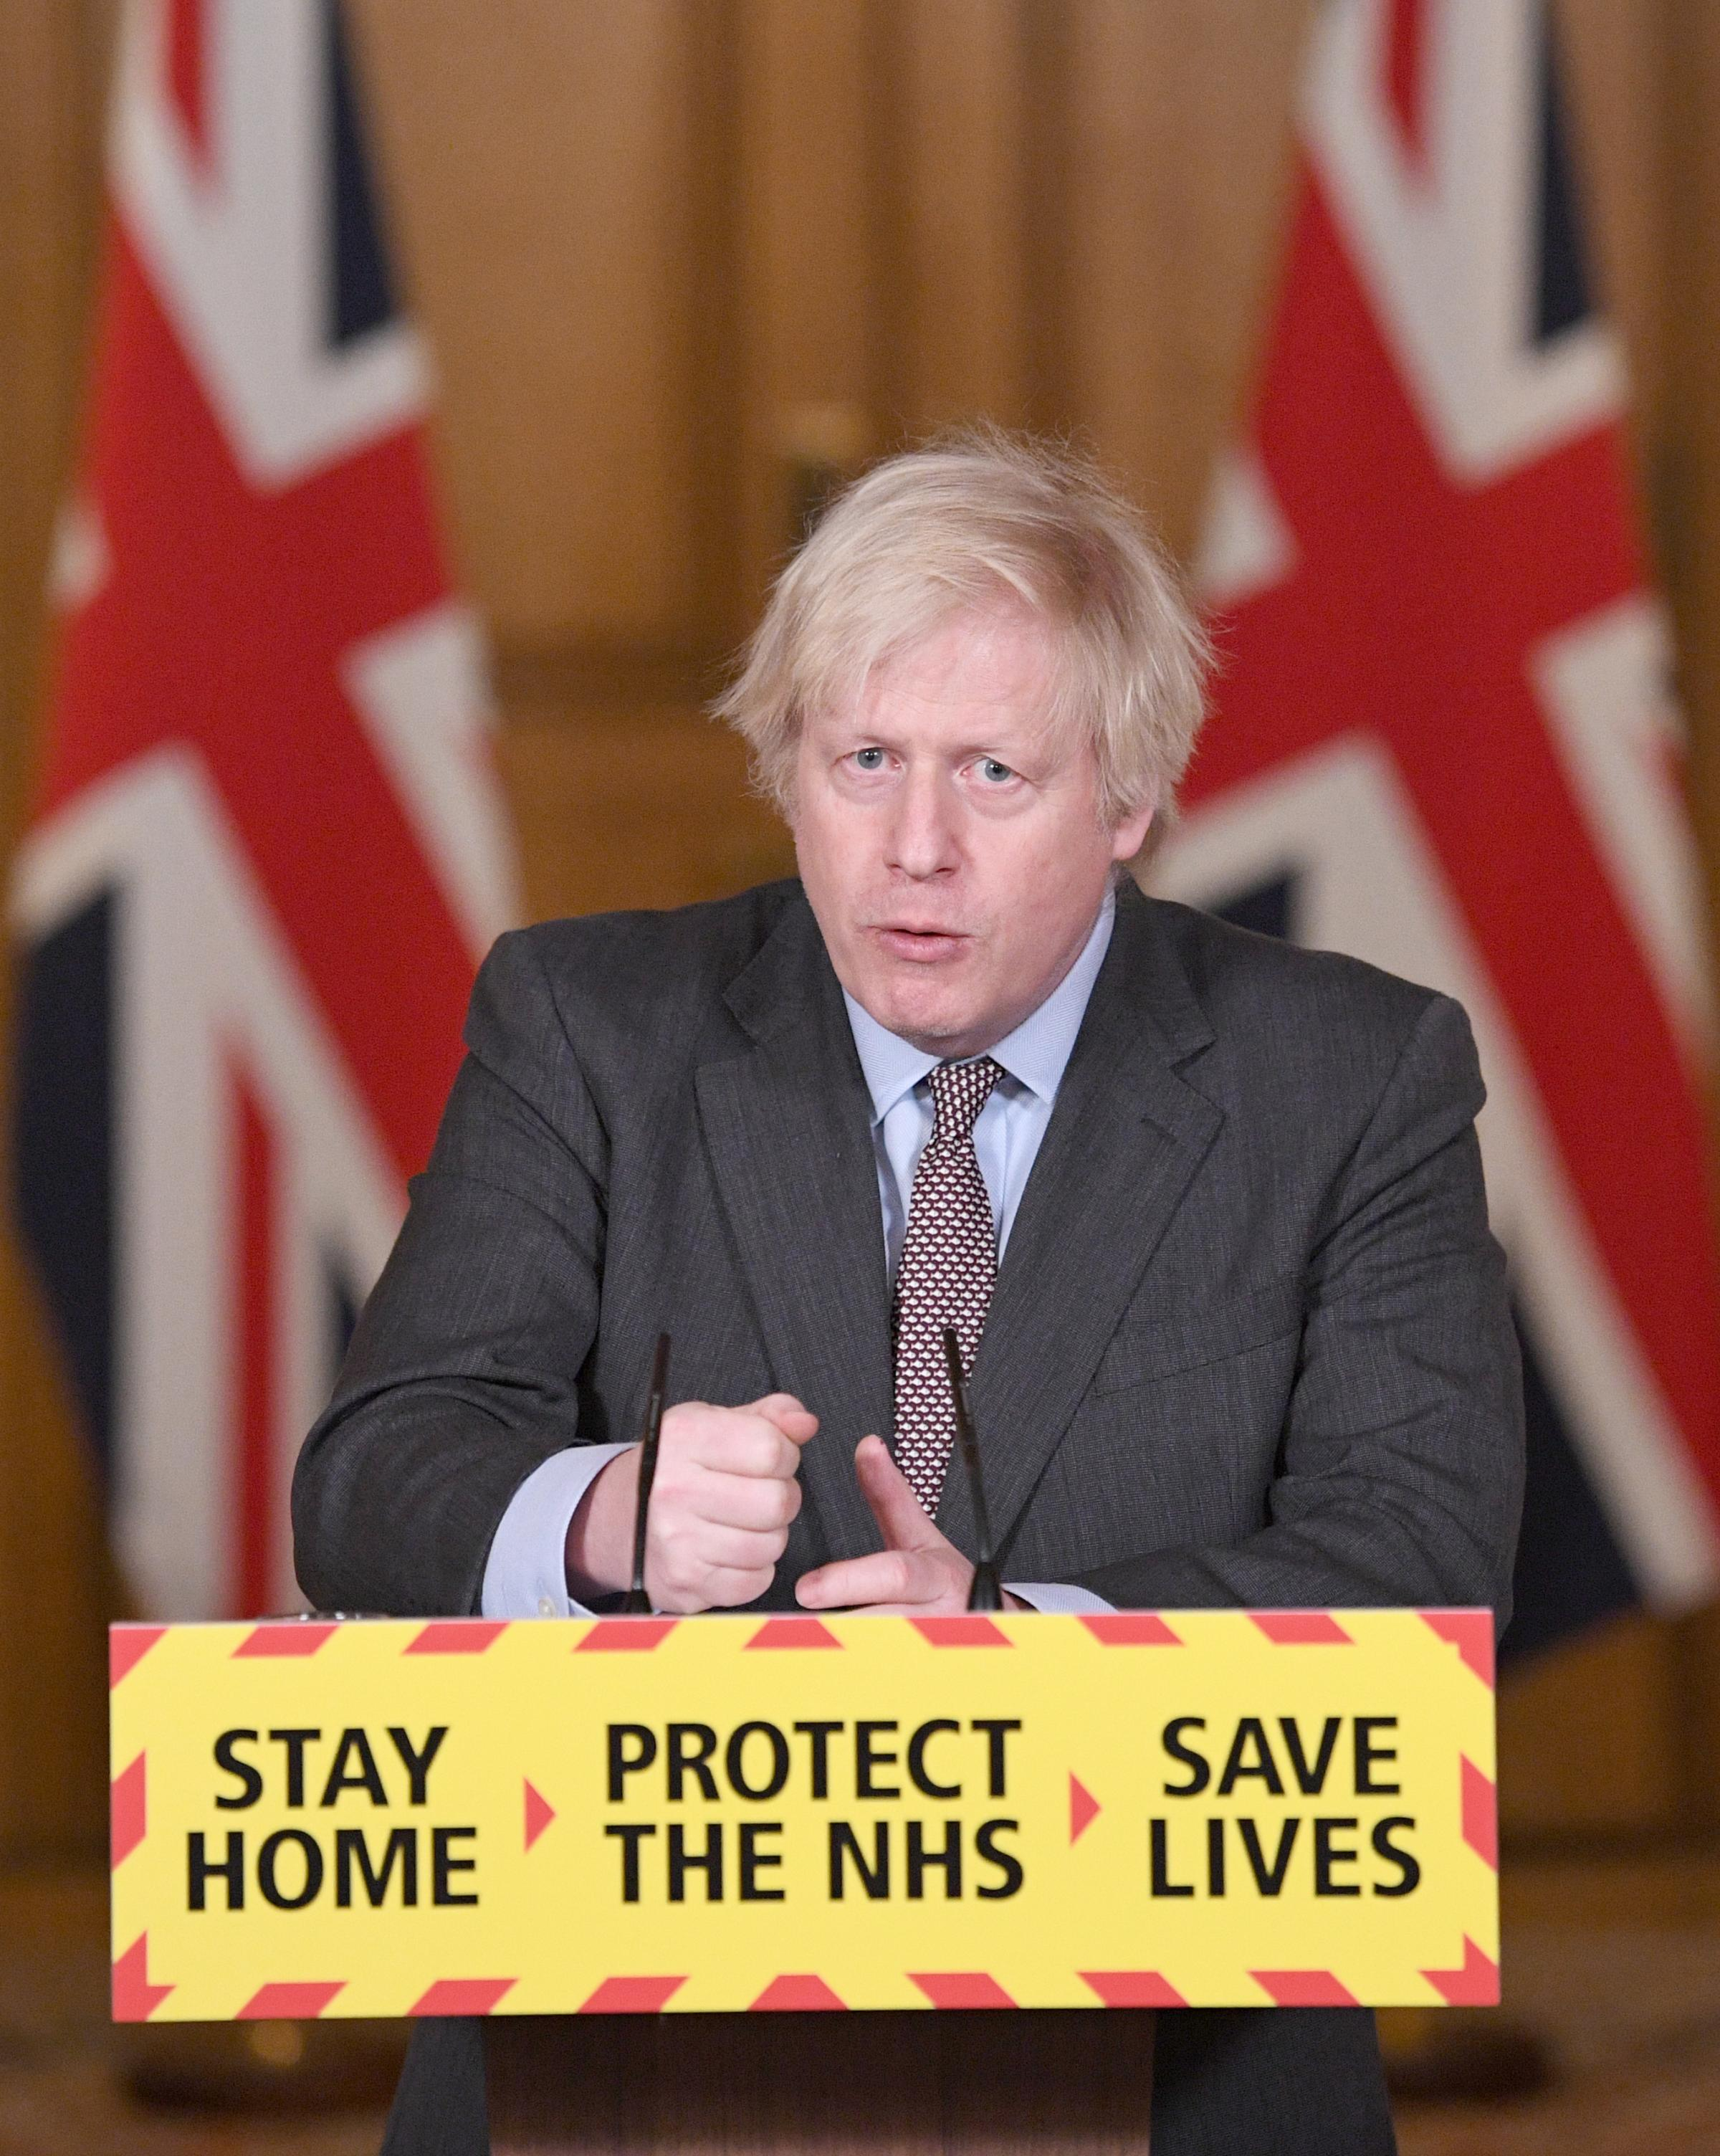 Prime Minister Boris Johnson during a media briefing in Downing Street, London, on coronavirus (Covid-19). Picture date: Wednesday February 3, 2021..